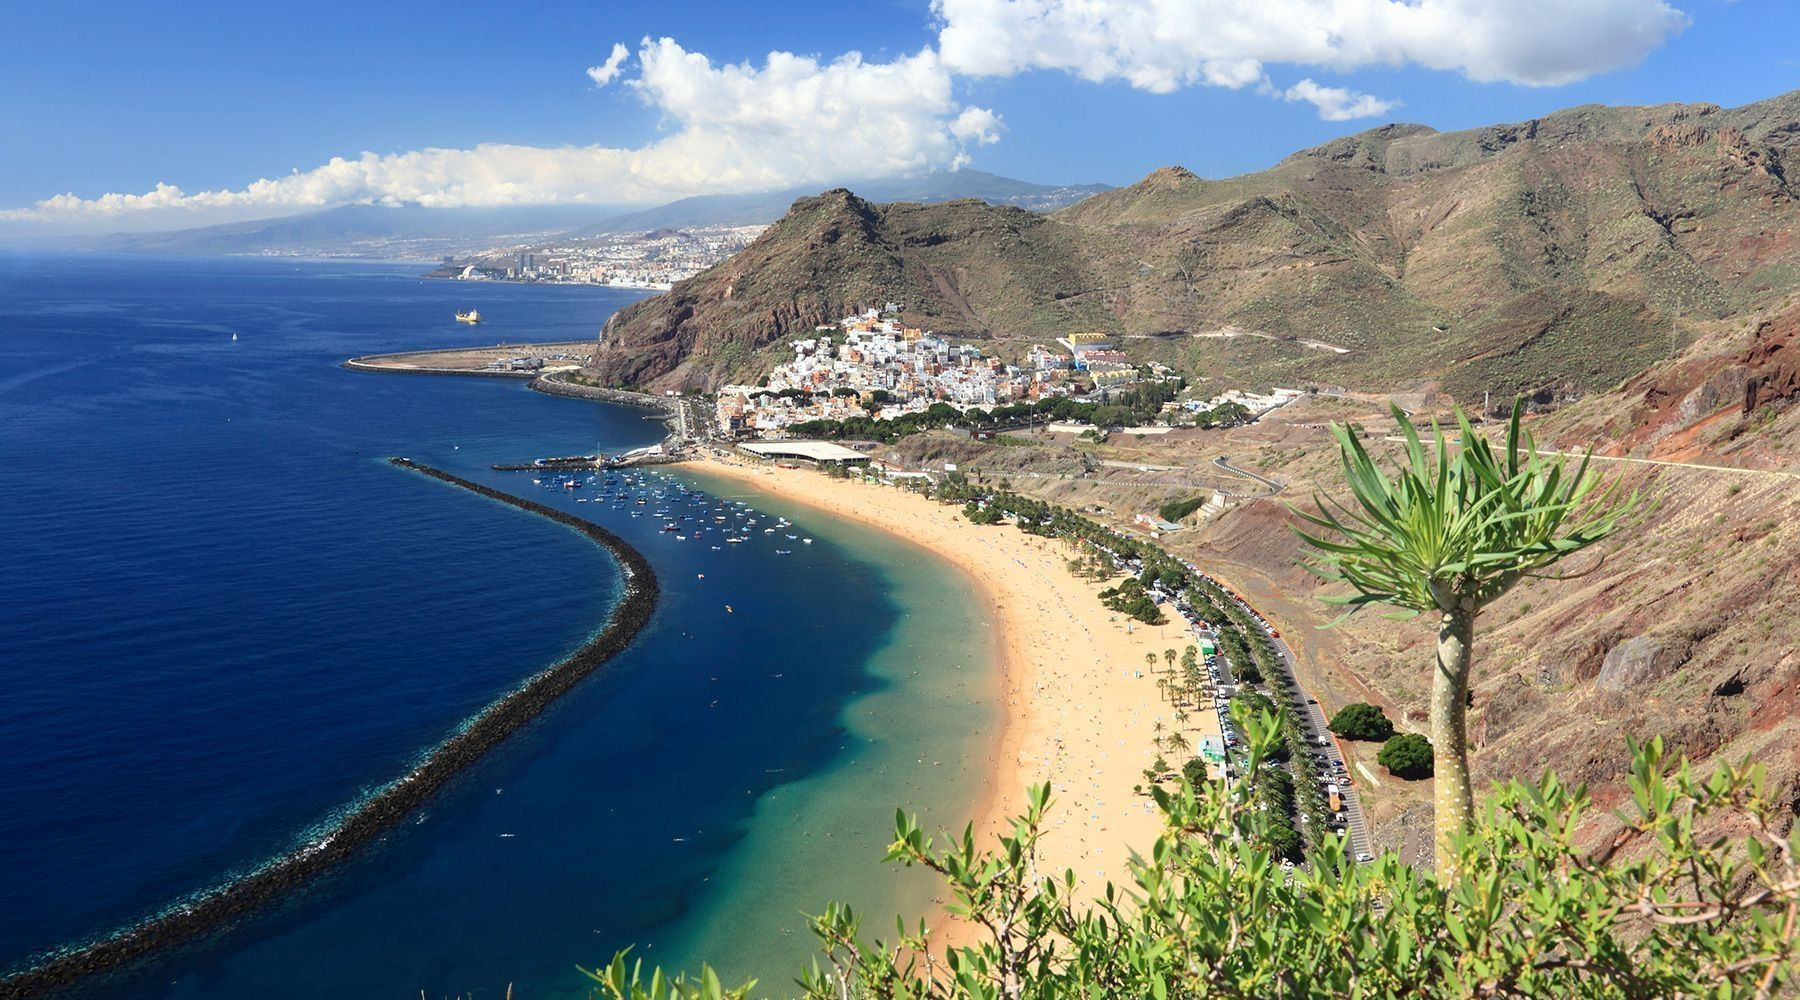 What Islands Are Part Of Canary Islands